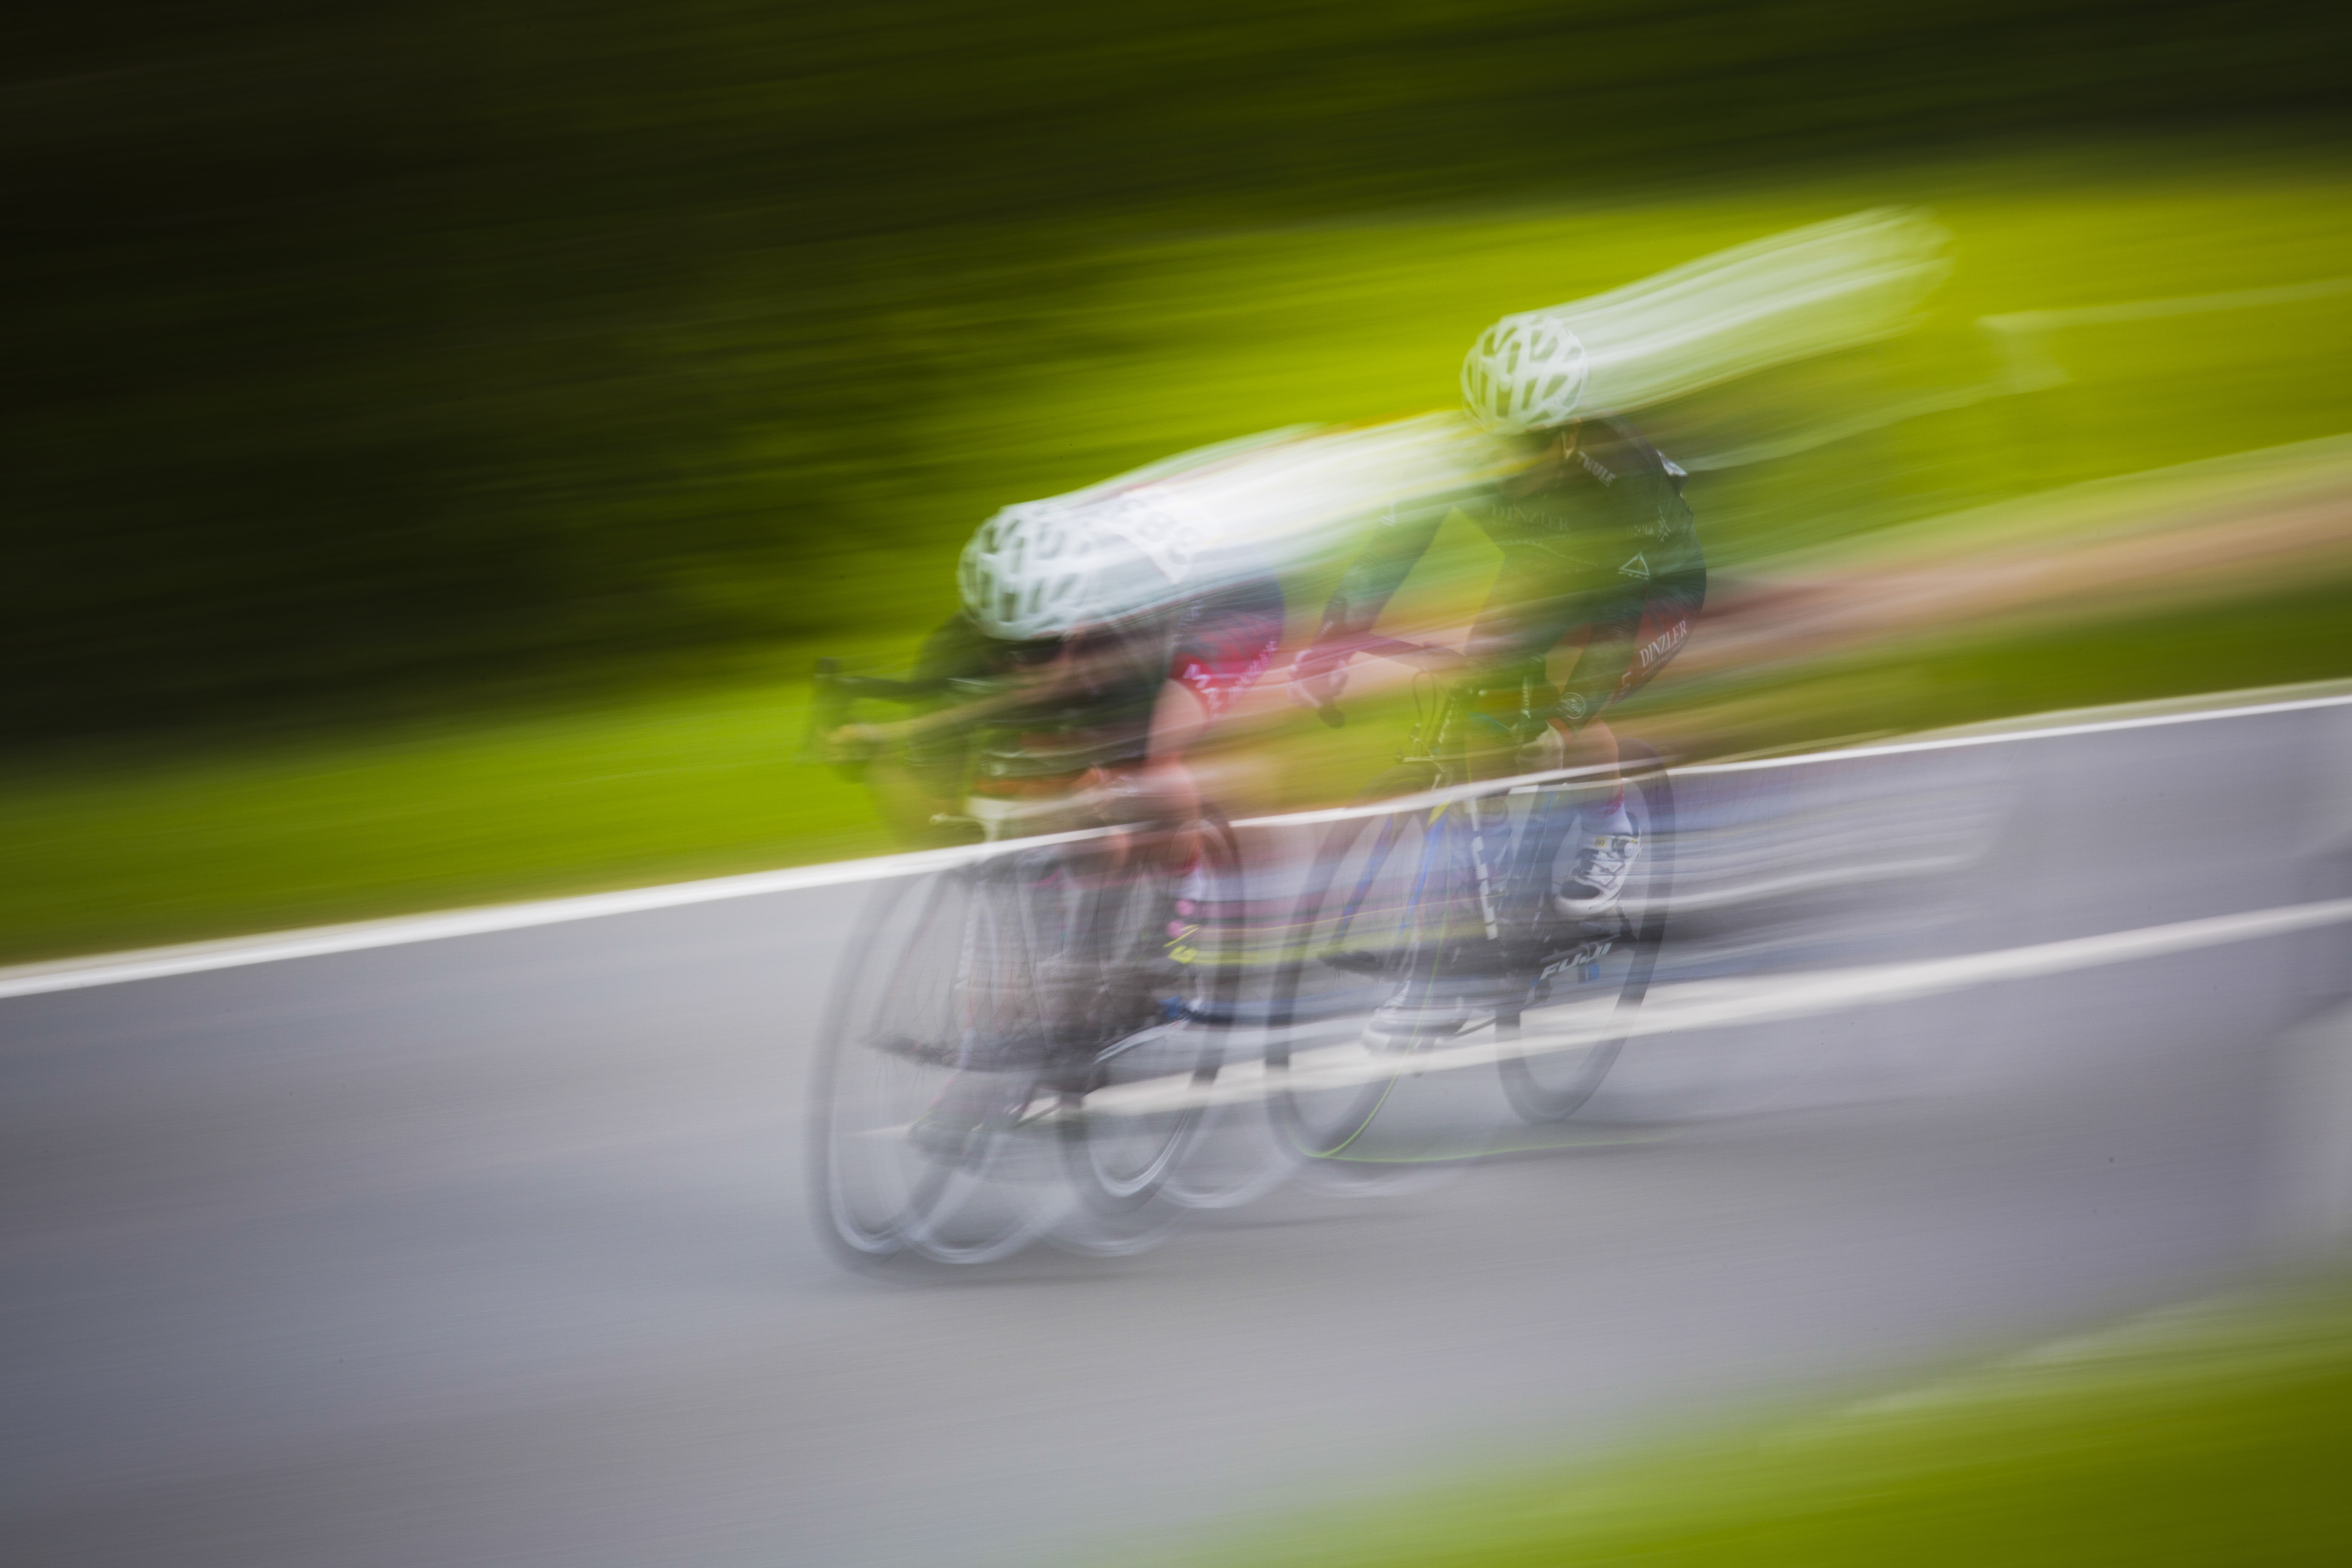 Long exposure of two cyclists in helmets racing on a road